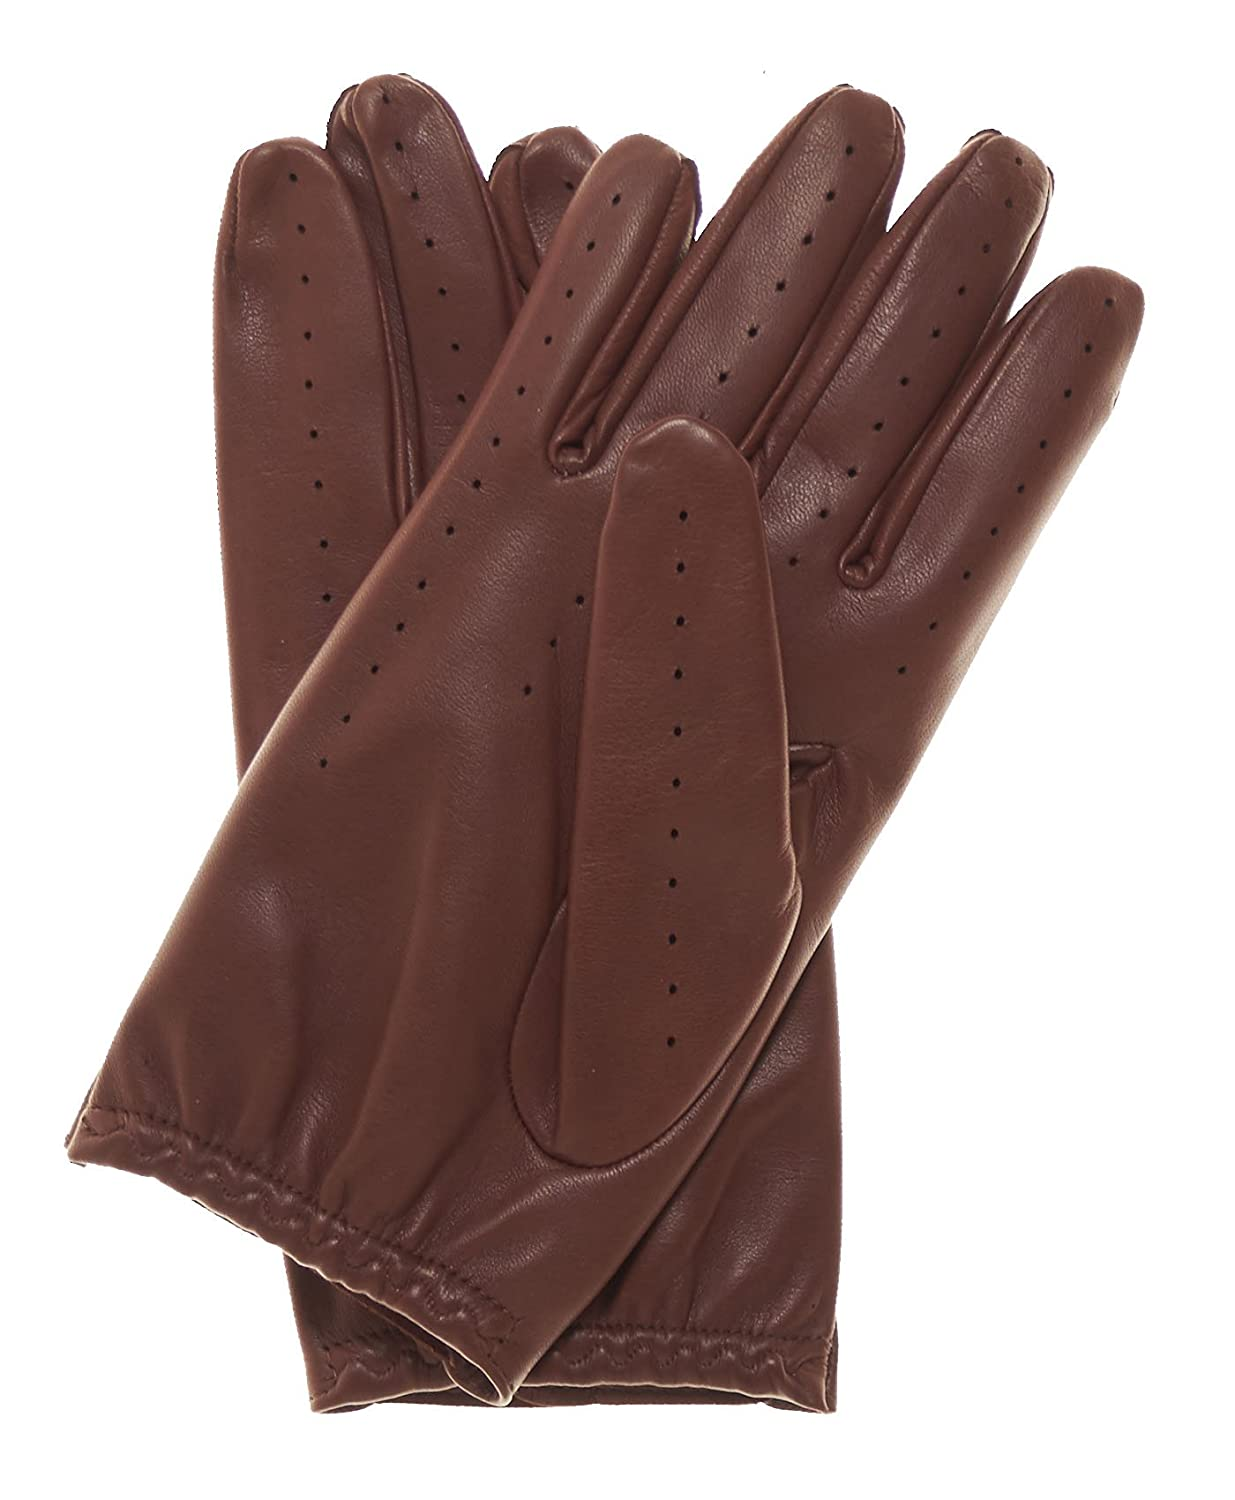 Driving gloves johannesburg - Fratelli Orsini Everyday Men S Italian Lambskin Leather Driving Gloves Size 7 Color Black At Amazon Men S Clothing Store Gloves Holes In Knuckles